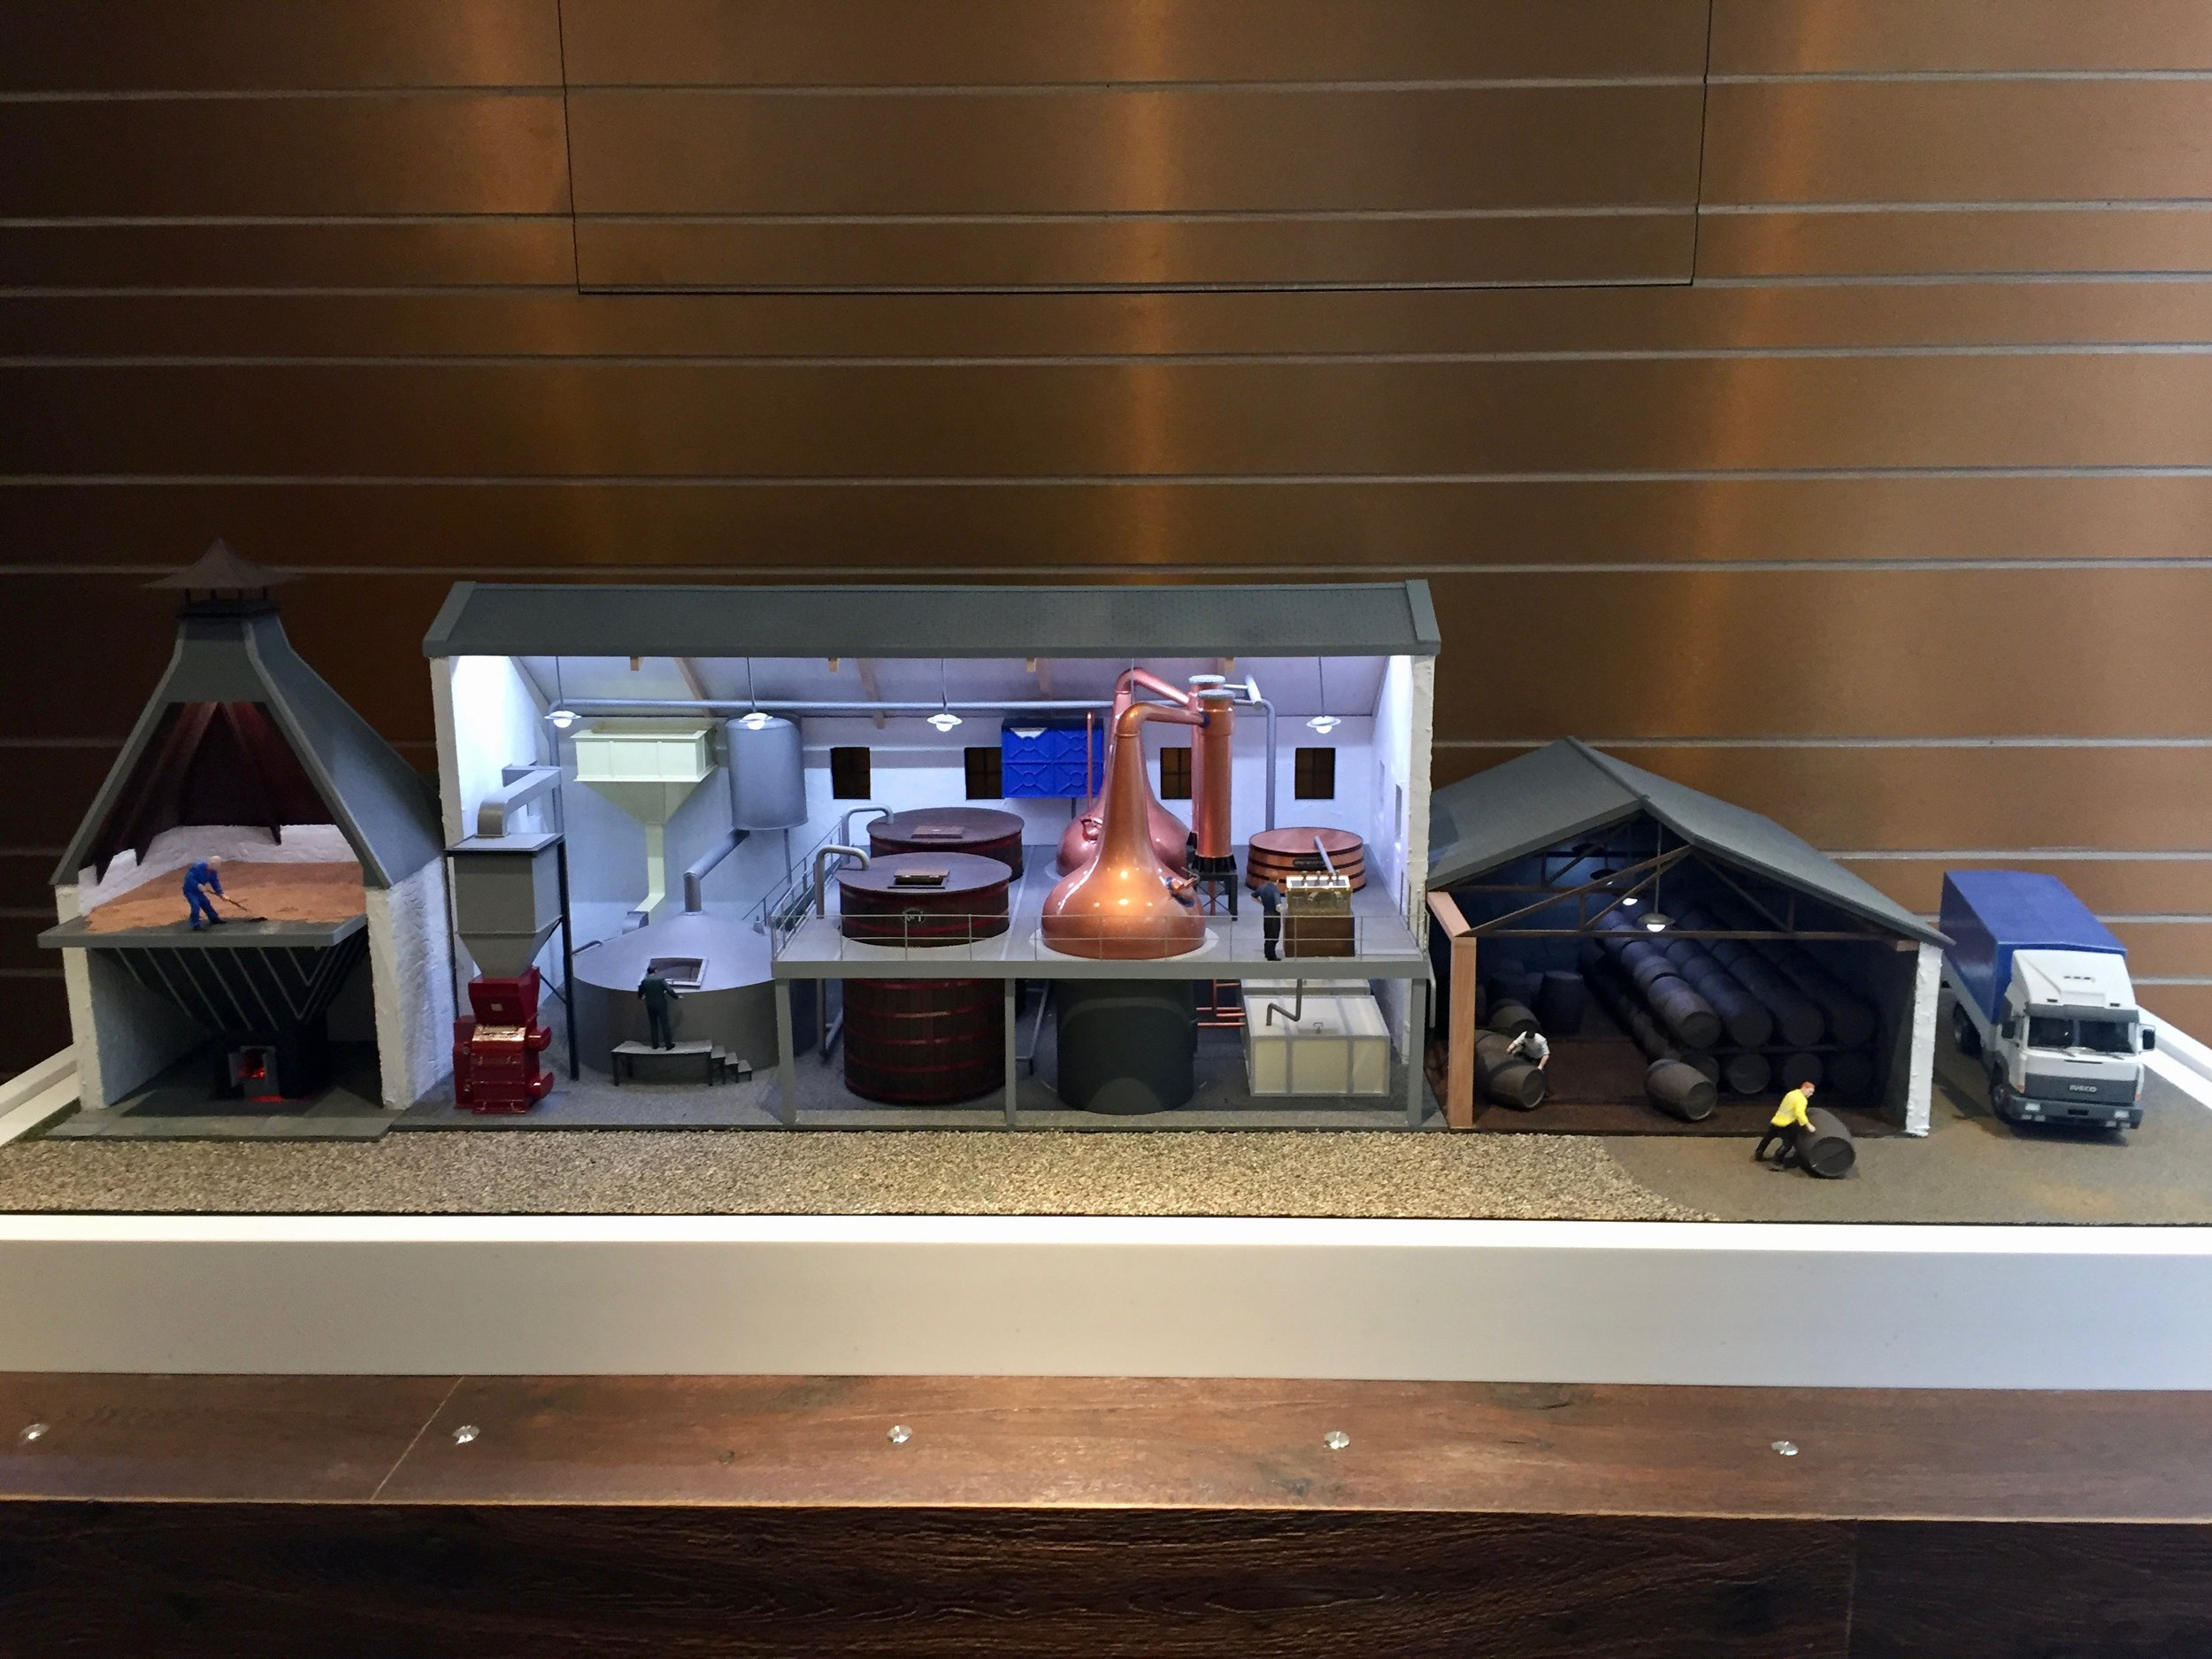 The distillery model in situ at the Scotch Whisky Experience. The six push buttons are along the front of the plinth.